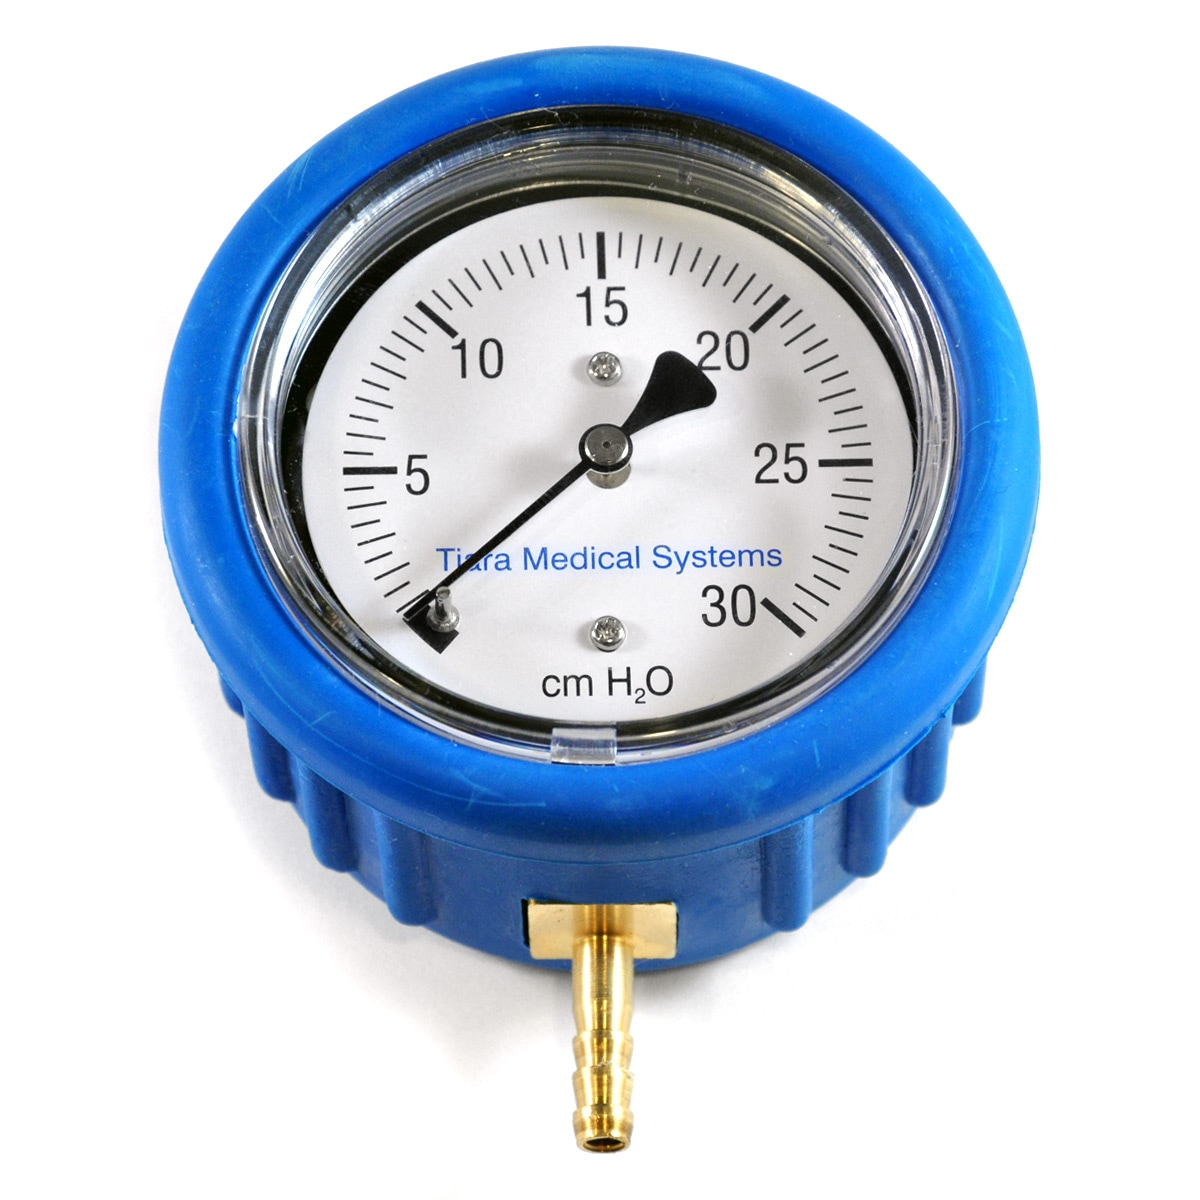 Gauge Manometer for All CPAP & BiPAP Machines : Ships Free